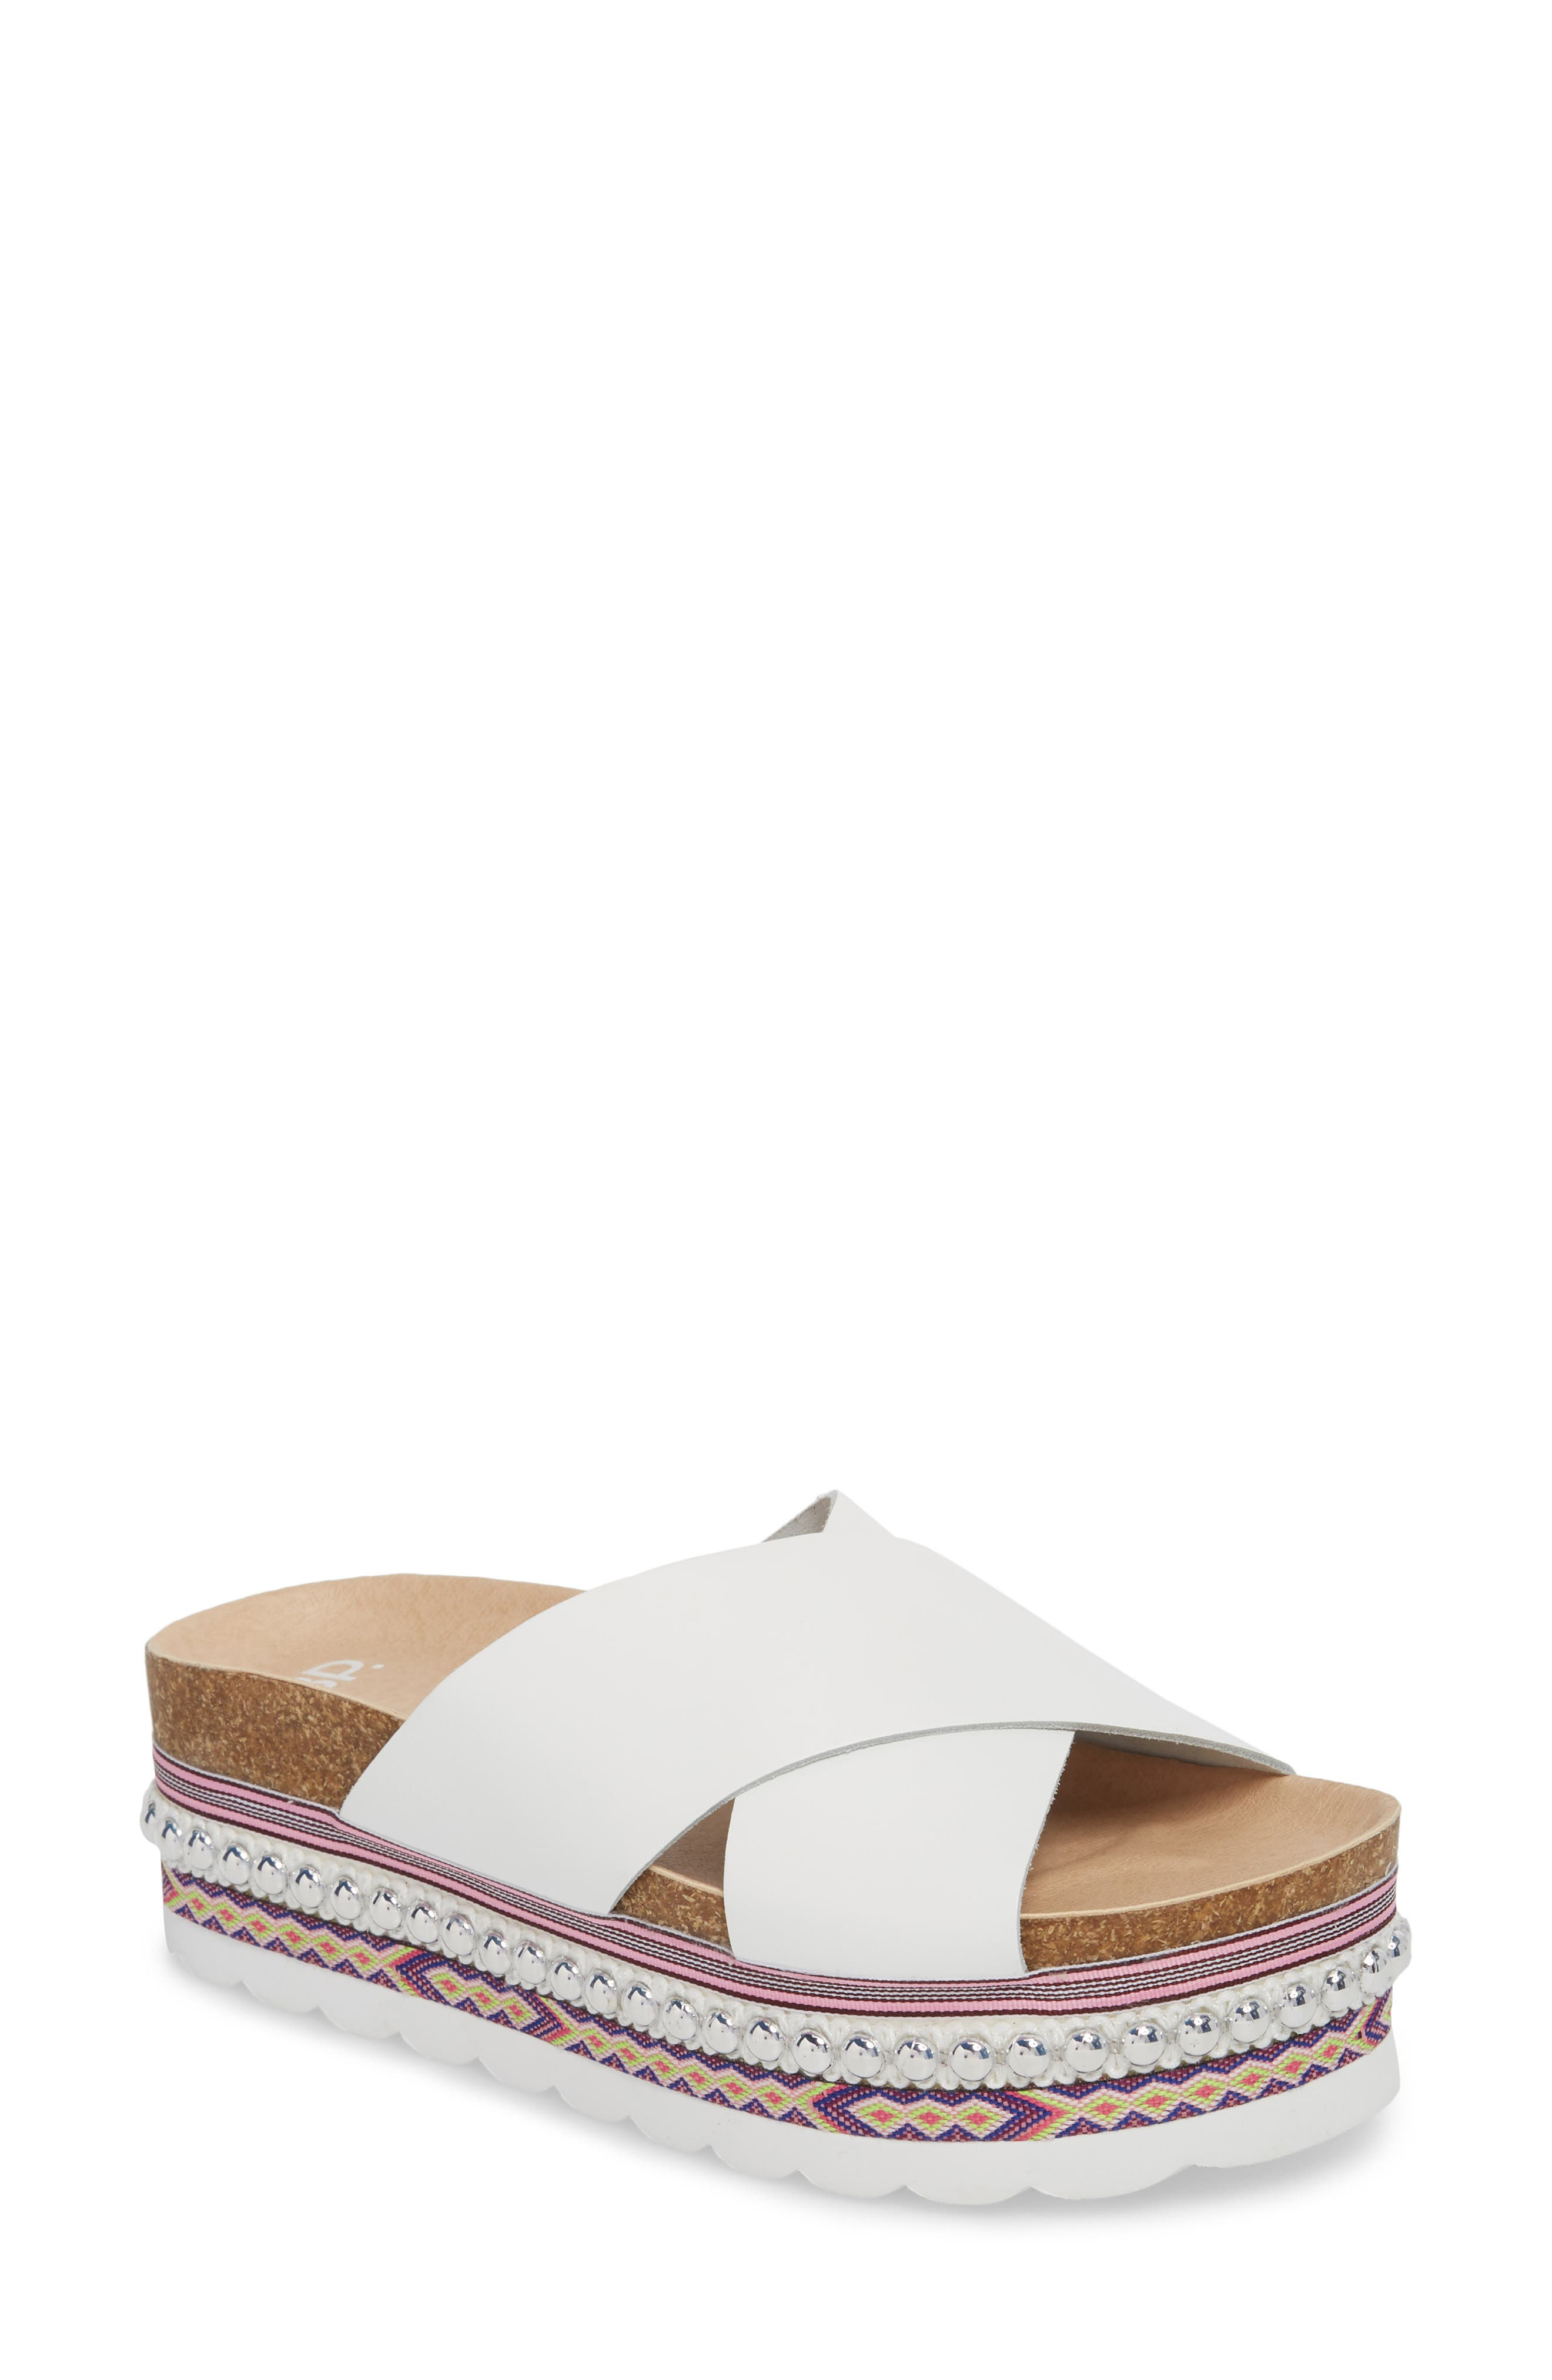 Torri Platform Slide Sandal,                         Main,                         color, WHITE LEATHER